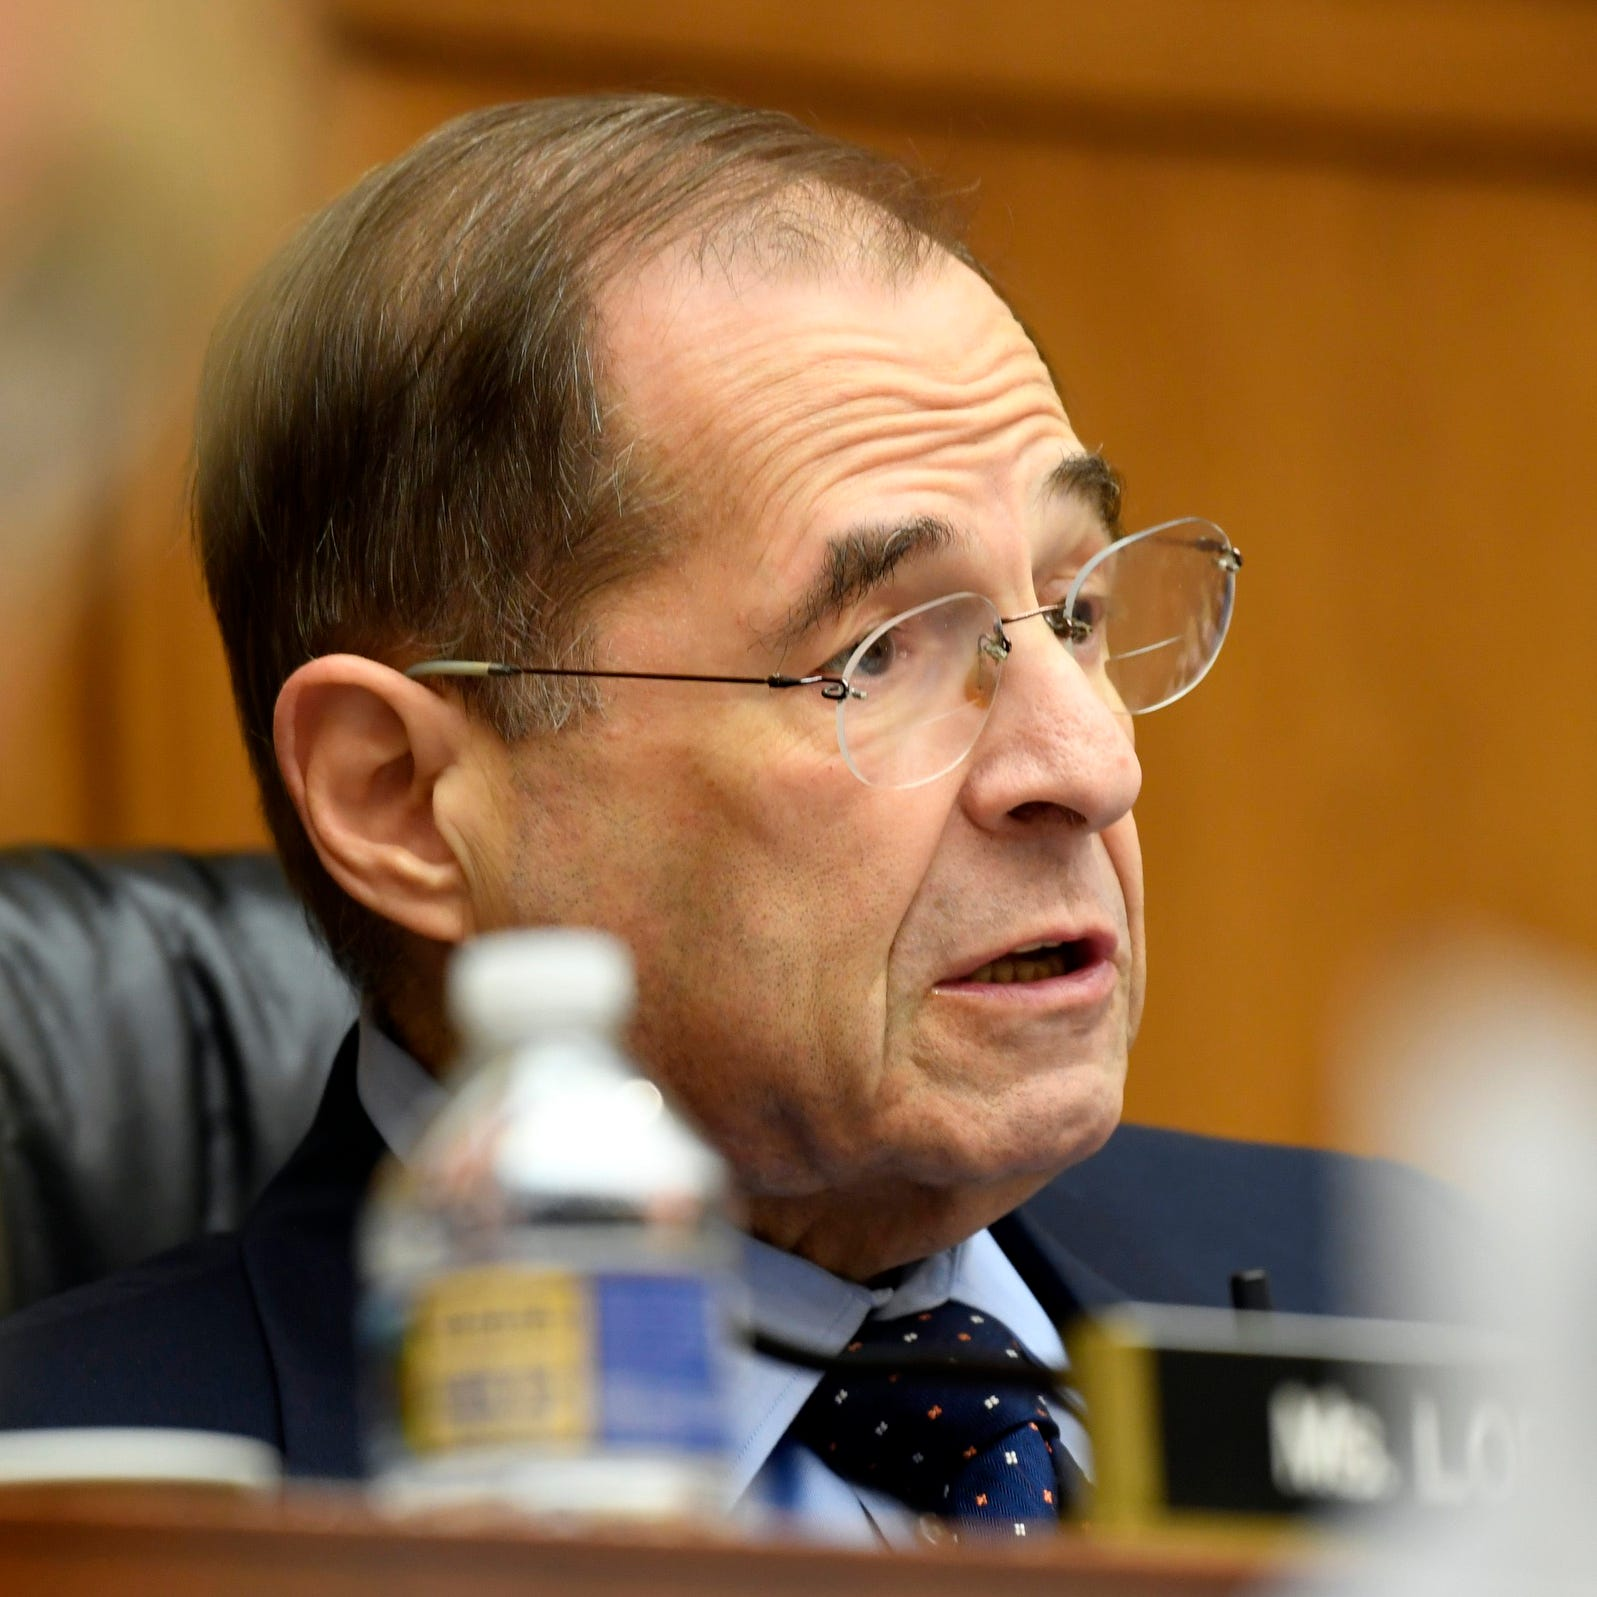 Rep. Jerry Nadler, D-N.Y., Chairman of the House Judiciary Committee, questions acting Attorney General Matthew Whitaker during a hearing on Feb. 8, 2019 in Washington.